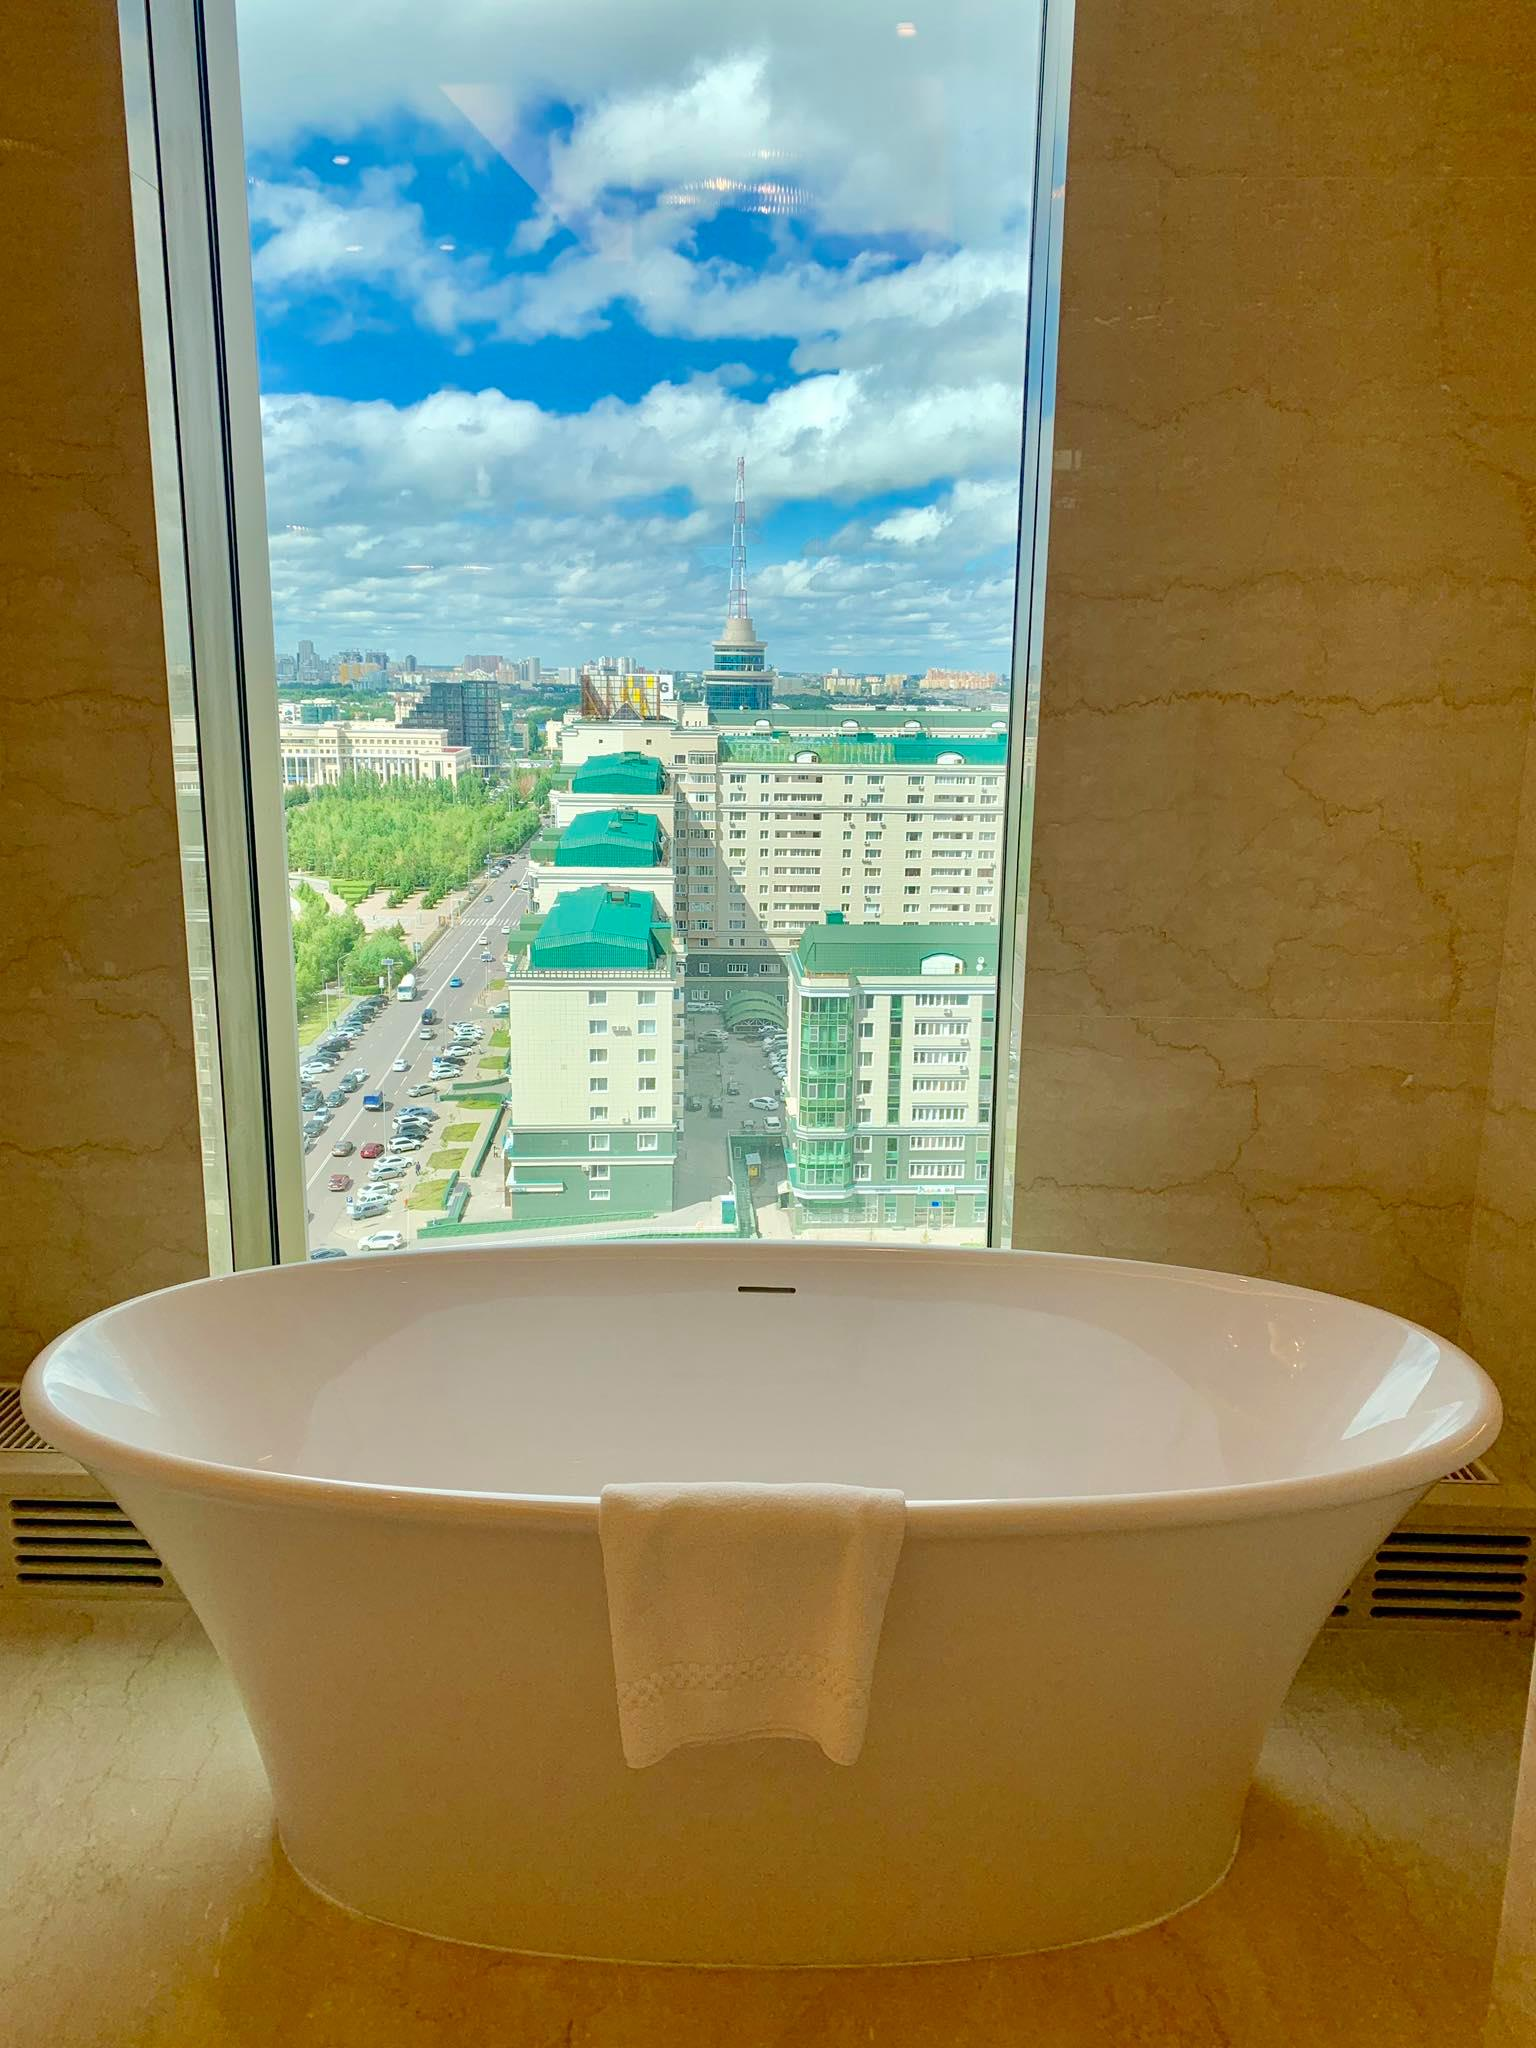 Kach Solo Travels in 2019 Hello from Astana, KAZAKHSTAN (my 129th country)69.jpg